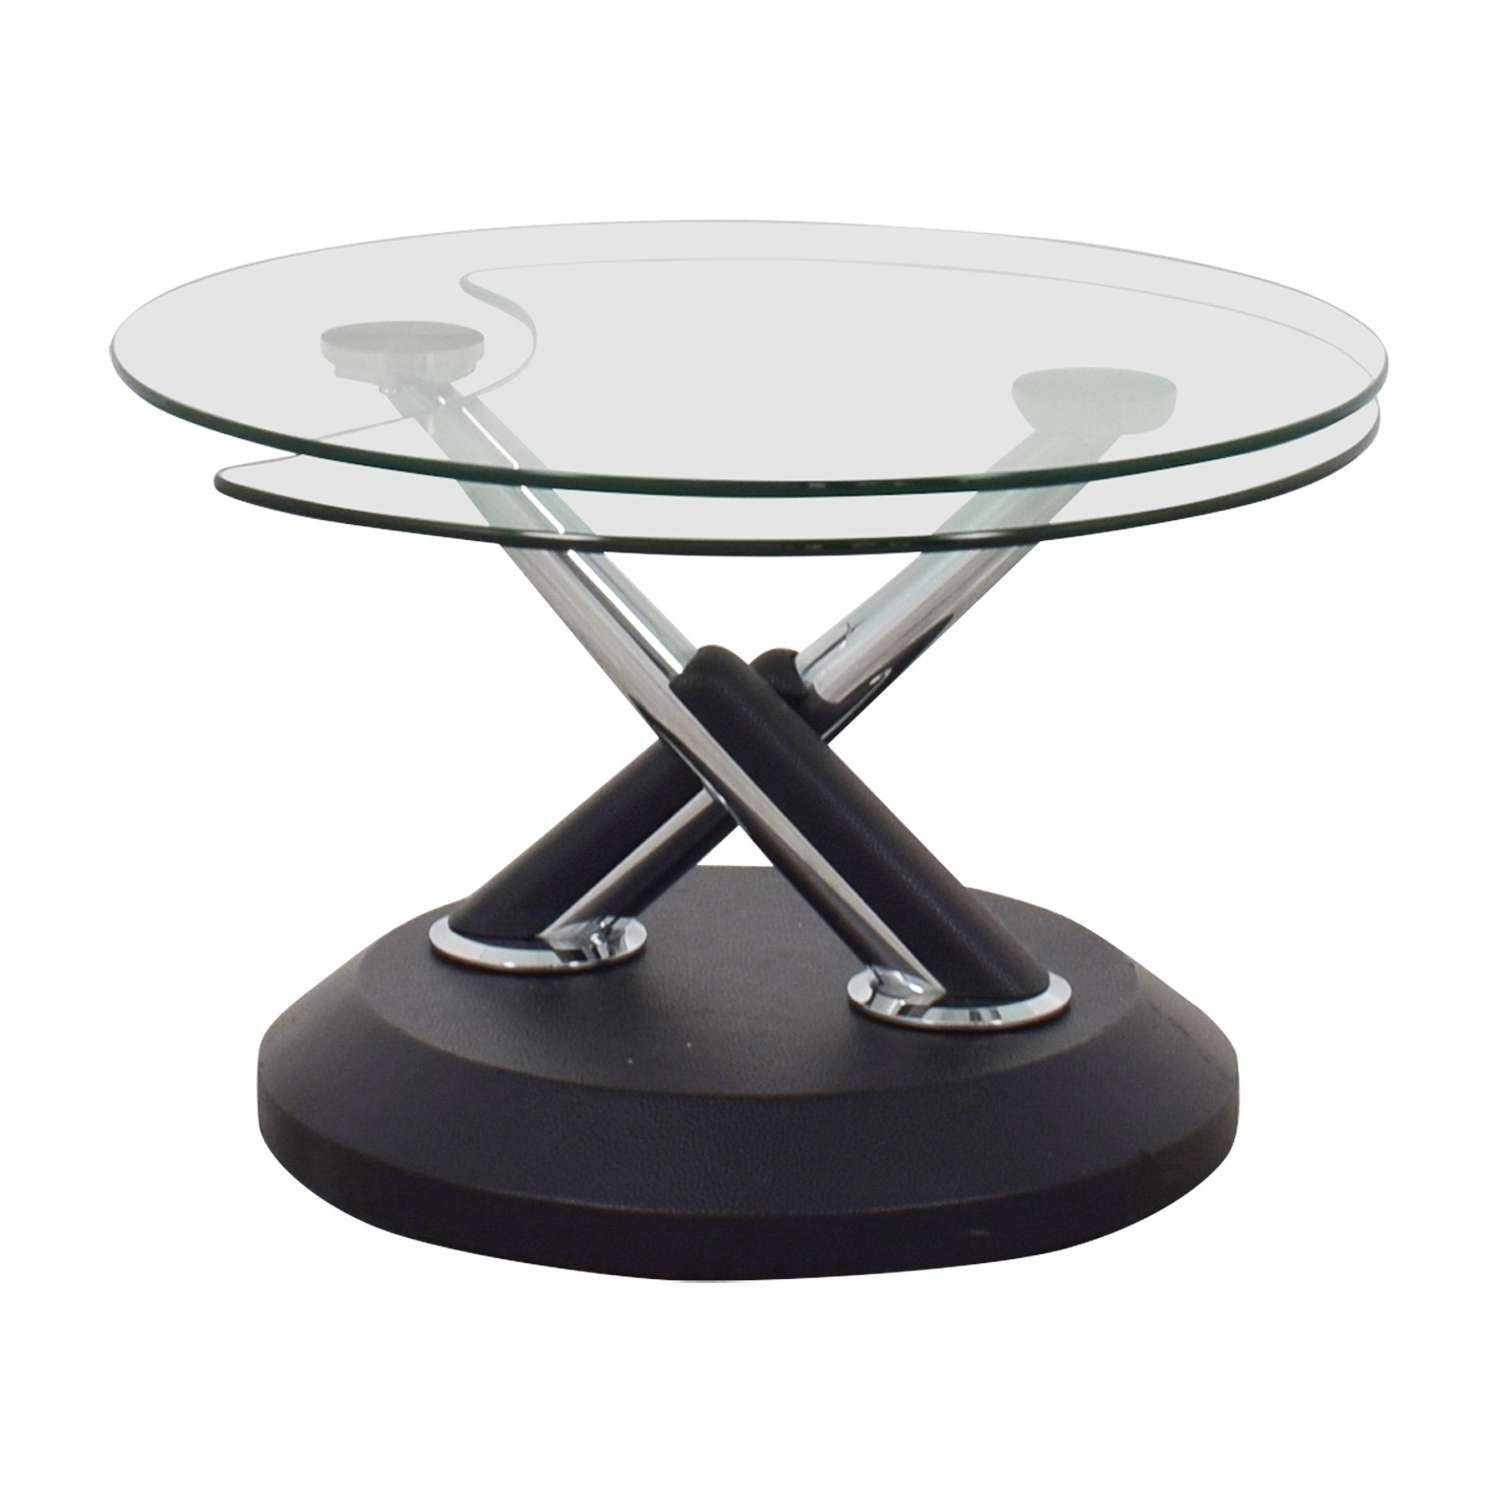 [%Latest Swivel Coffee Tables For 80% Off – West Elm West Elm Glass Swivel Coffee Table / Tables|80% Off – West Elm West Elm Glass Swivel Coffee Table / Tables Pertaining To Current Swivel Coffee Tables%] (View 1 of 20)